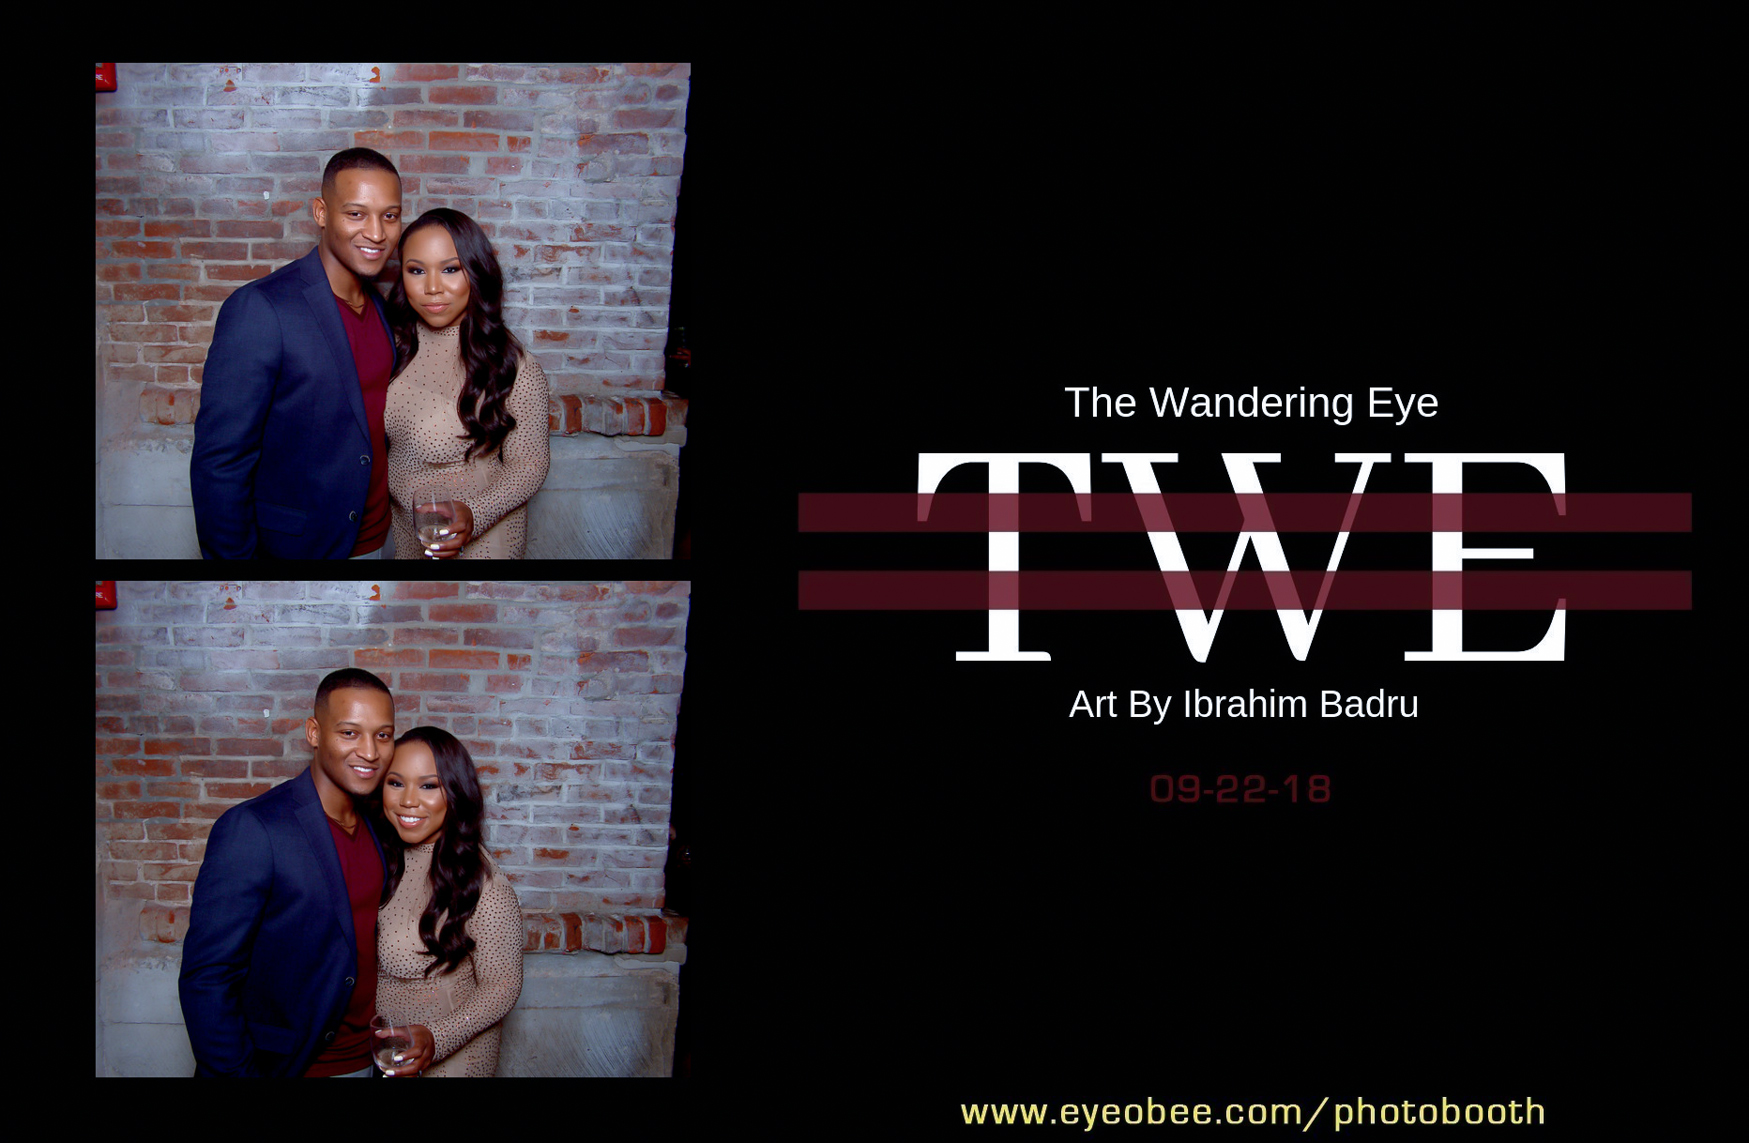 eyeobee PhotoBooth The Wandering eye art by Ibrahim Badru-0-58.jpg